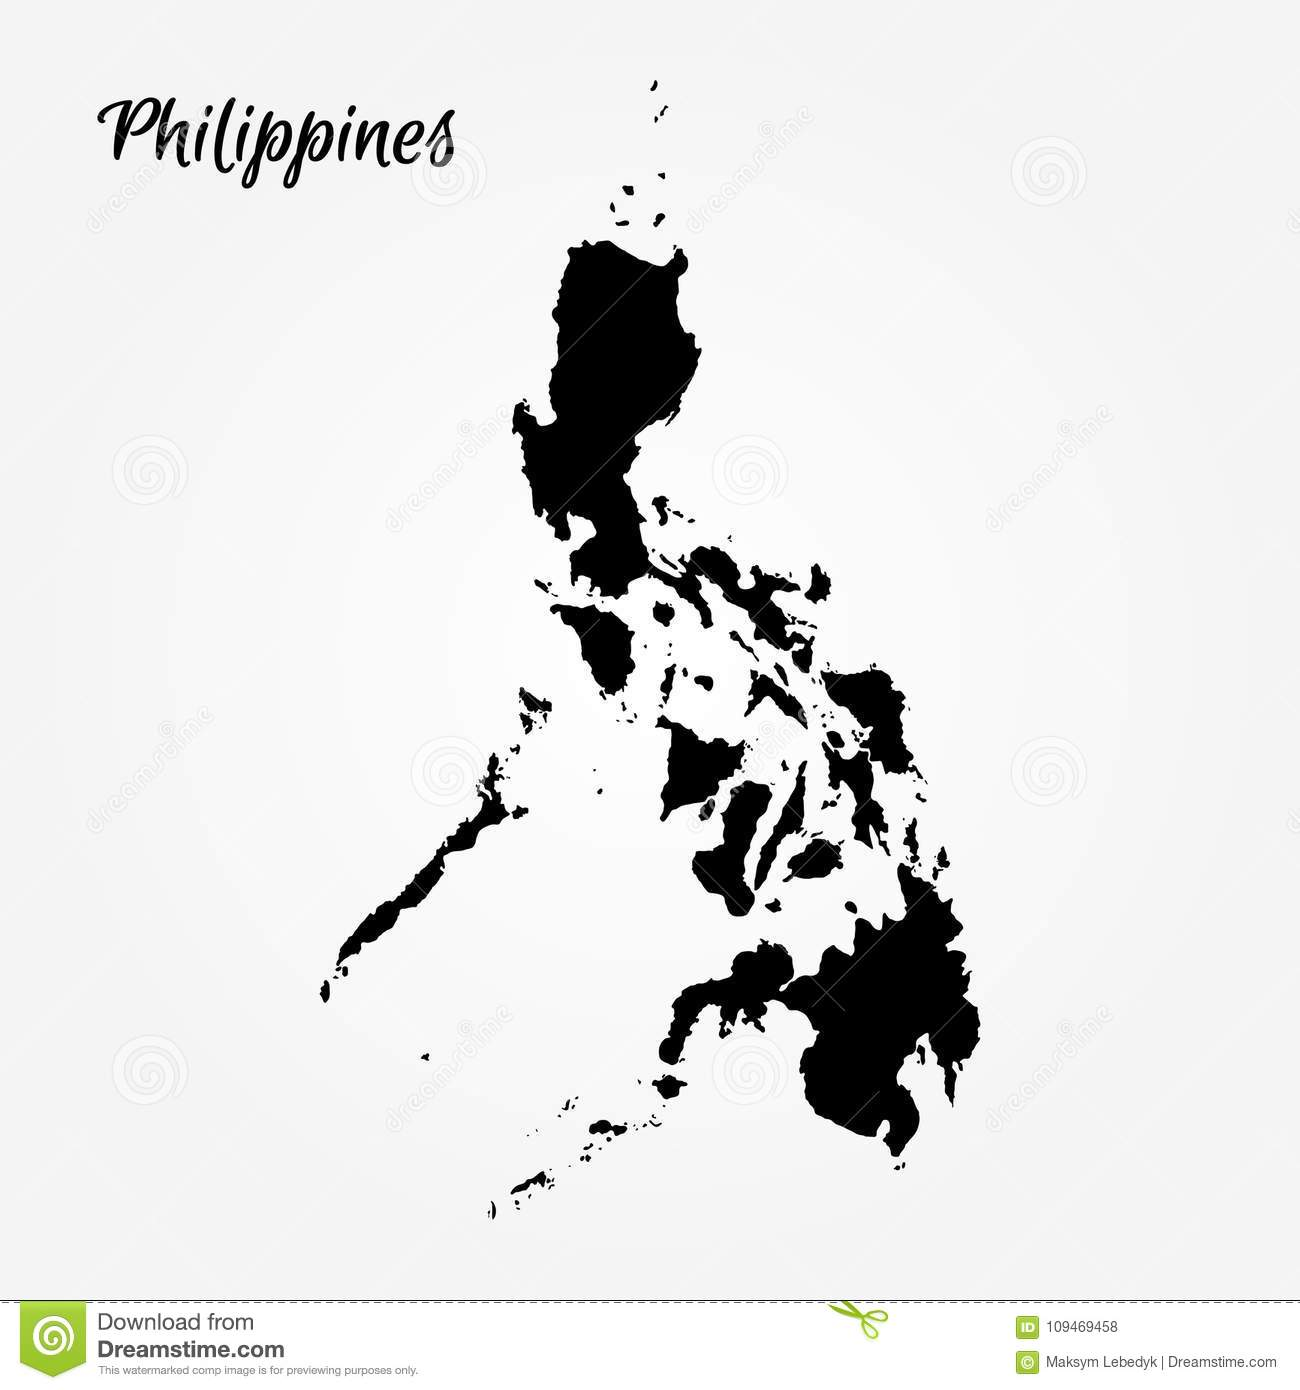 Map of Philippines stock illustration. Illustration of drawing ... World Map Including Philippines on world map including romania, world map including jordan, world map including florida, world map including dubai, world map including islands, world map including all countries, world map including malaysia, world map including germany, world map including aruba, world map including dominican republic, world map including china, world map including syria, world map including chile, world map including micronesia, world map including guam, world map including egypt, world map including england, world map including italy, world map including albania, world map including hong kong,